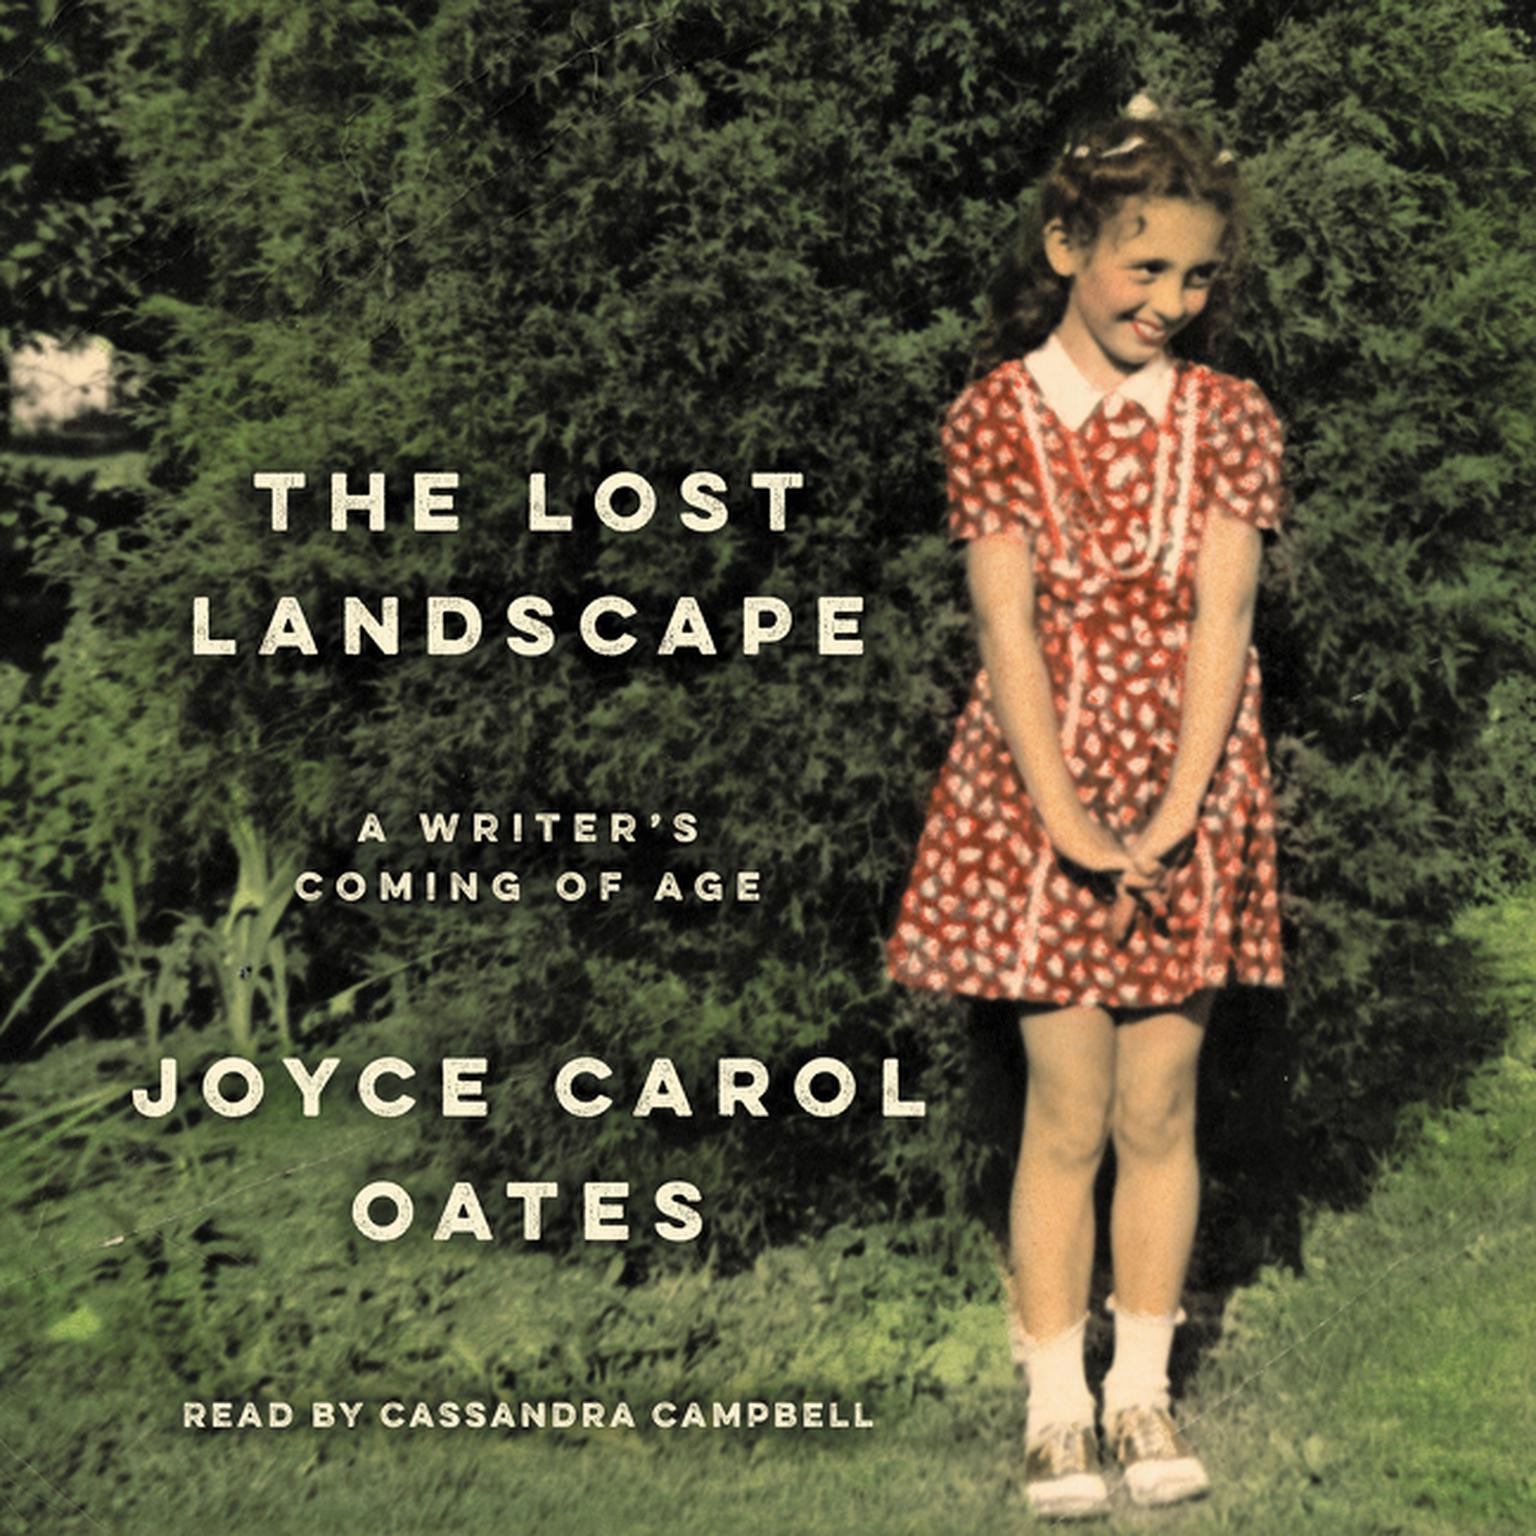 hear the lost landscape audiobook by joyce carol oates for just 5 95 extended audio sample the lost landscape a writers coming of age audiobook by joyce carol oates